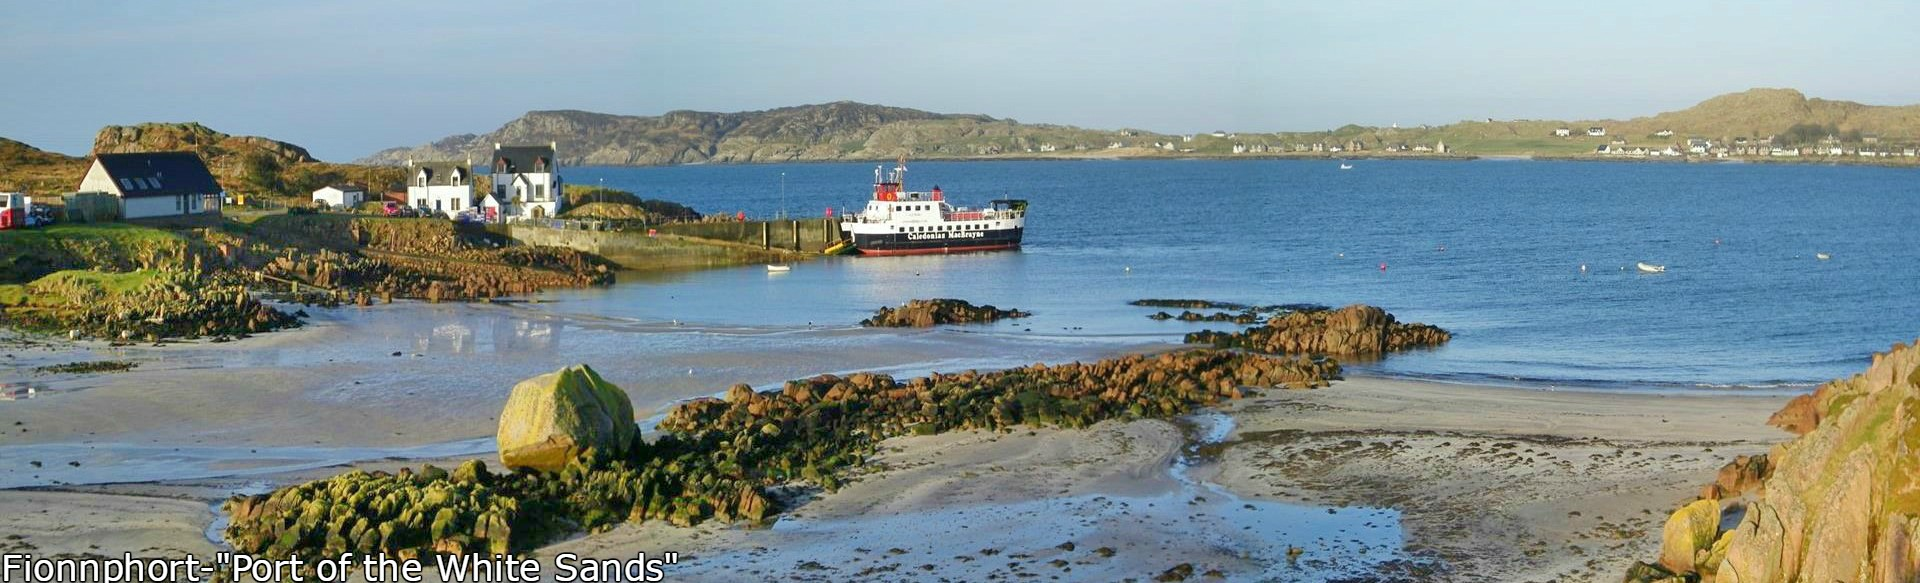 bed and breakfast,Isle of Mull, Fionnphort